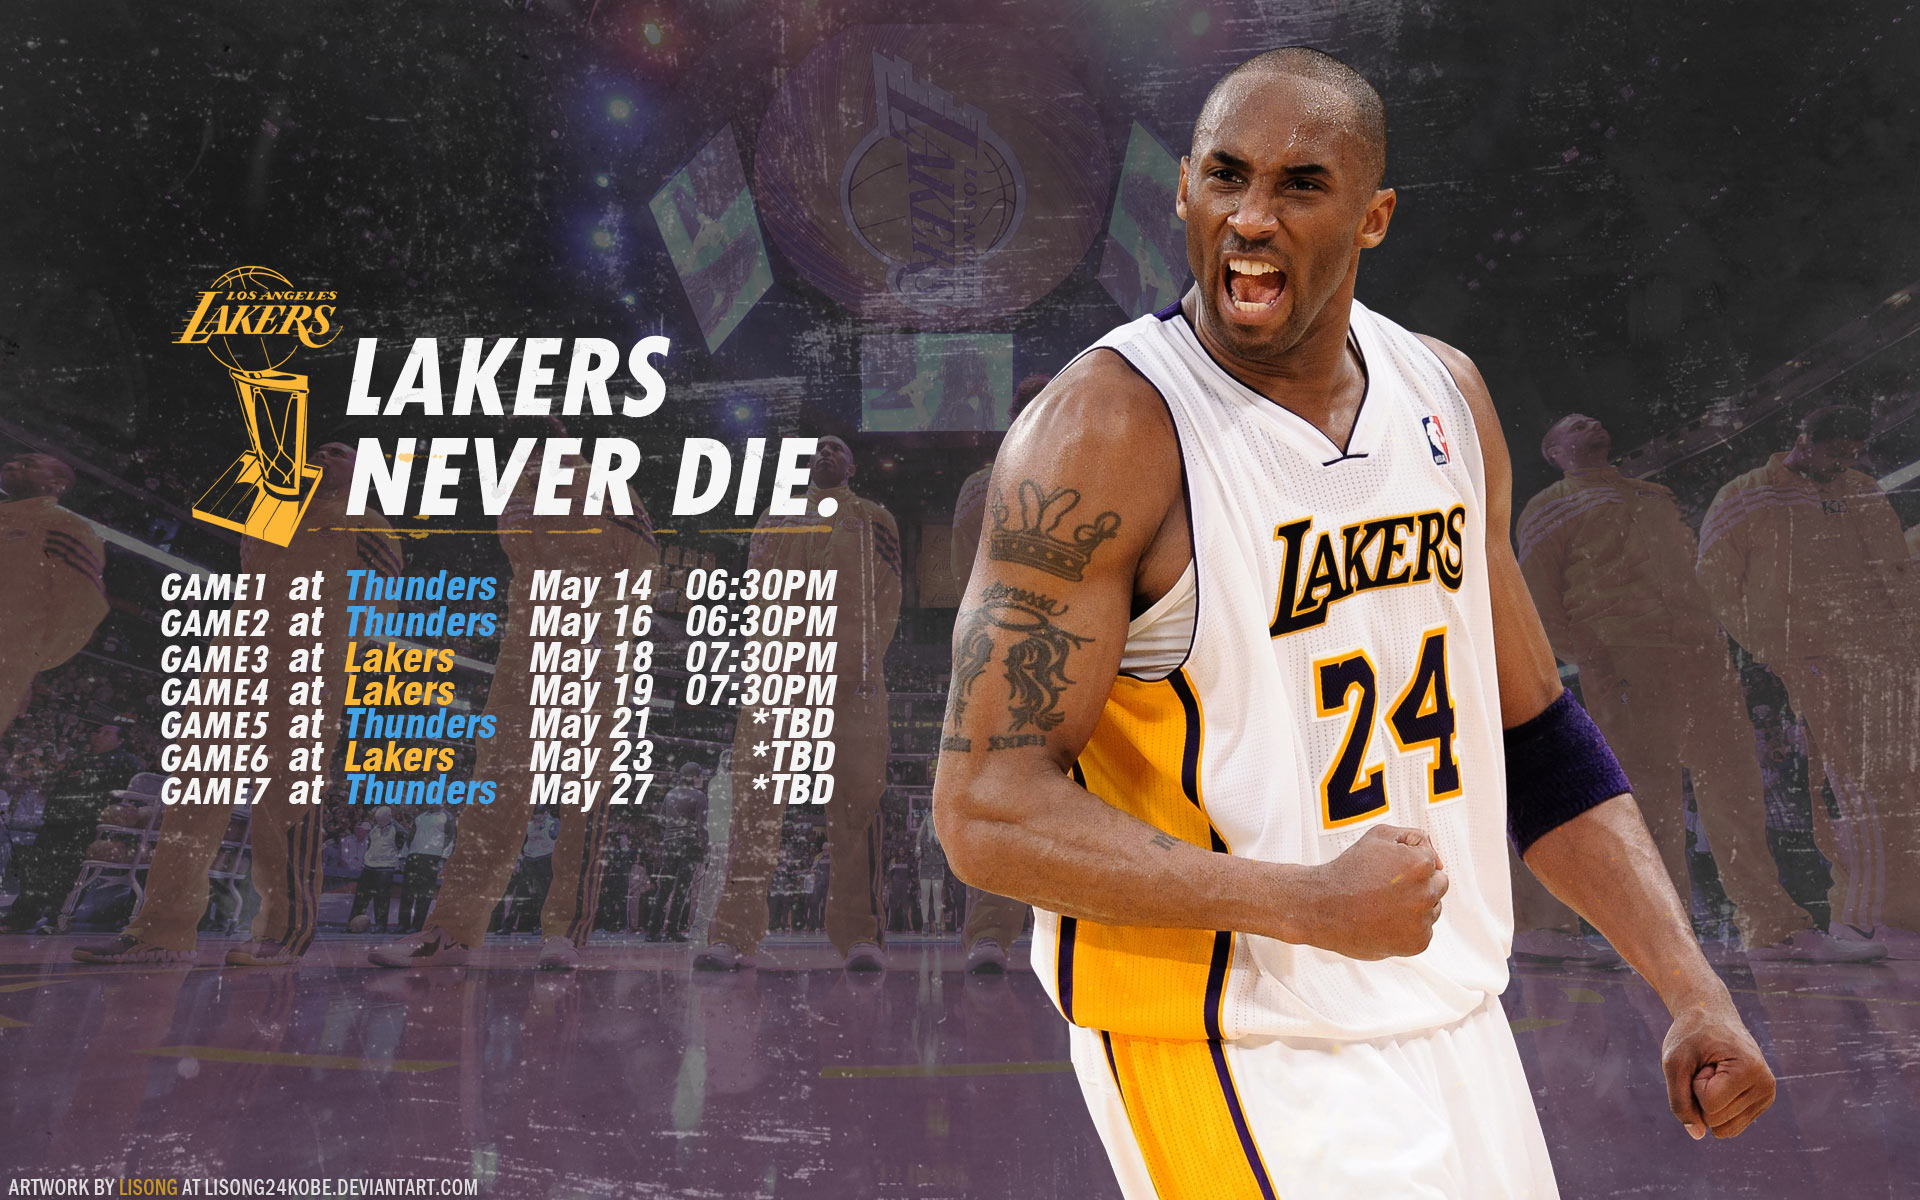 Los Angeles Lakers Wallpapers | Basketball Wallpapers at BasketWallpapers.com